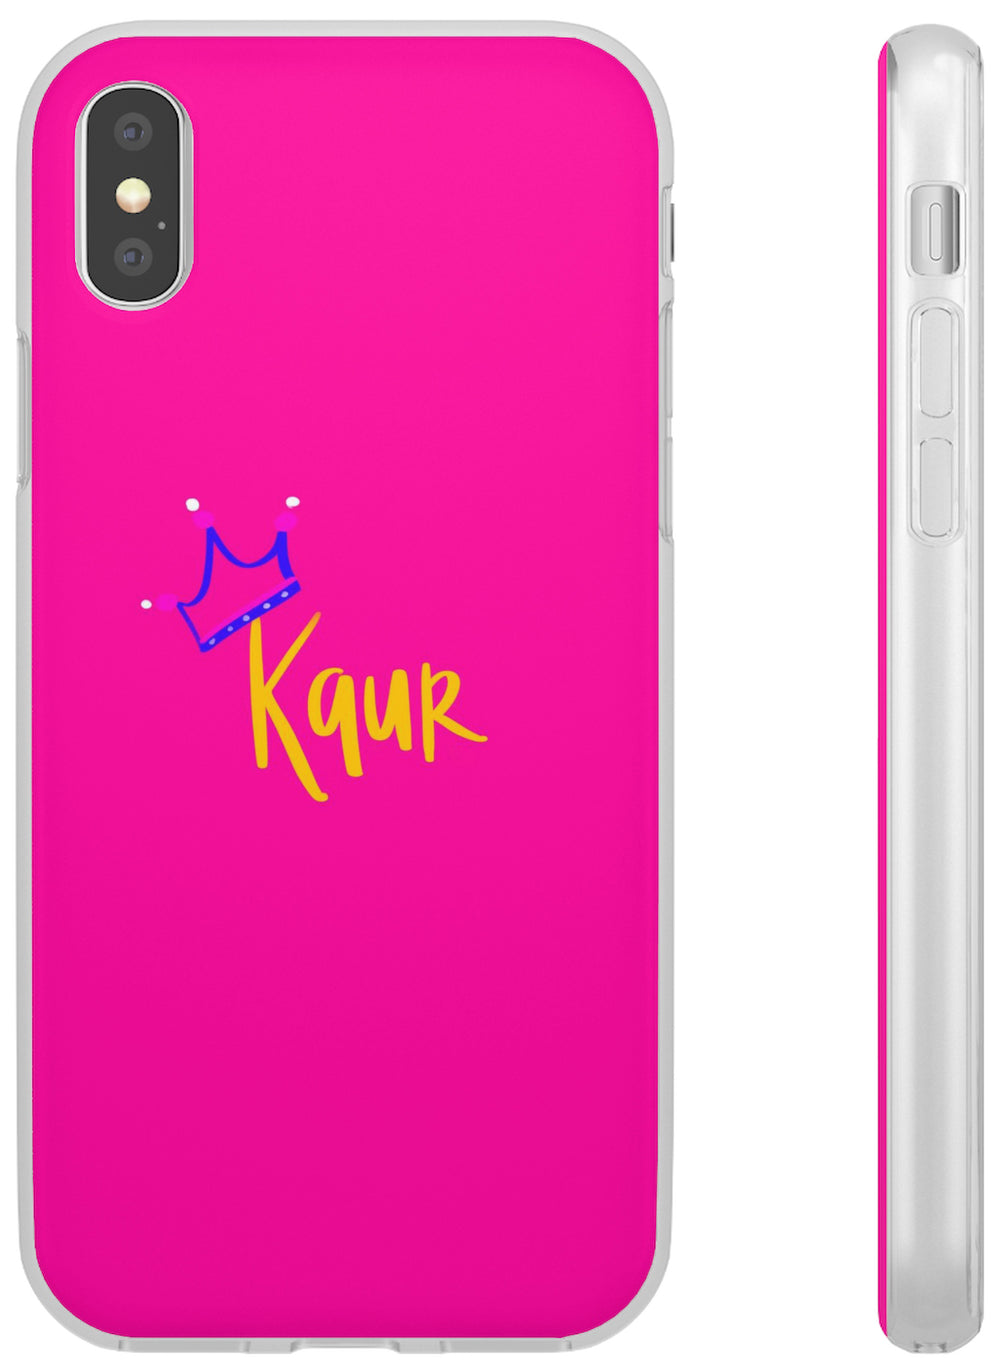 Kaur Royal - Flexi Case - Sikhexpo